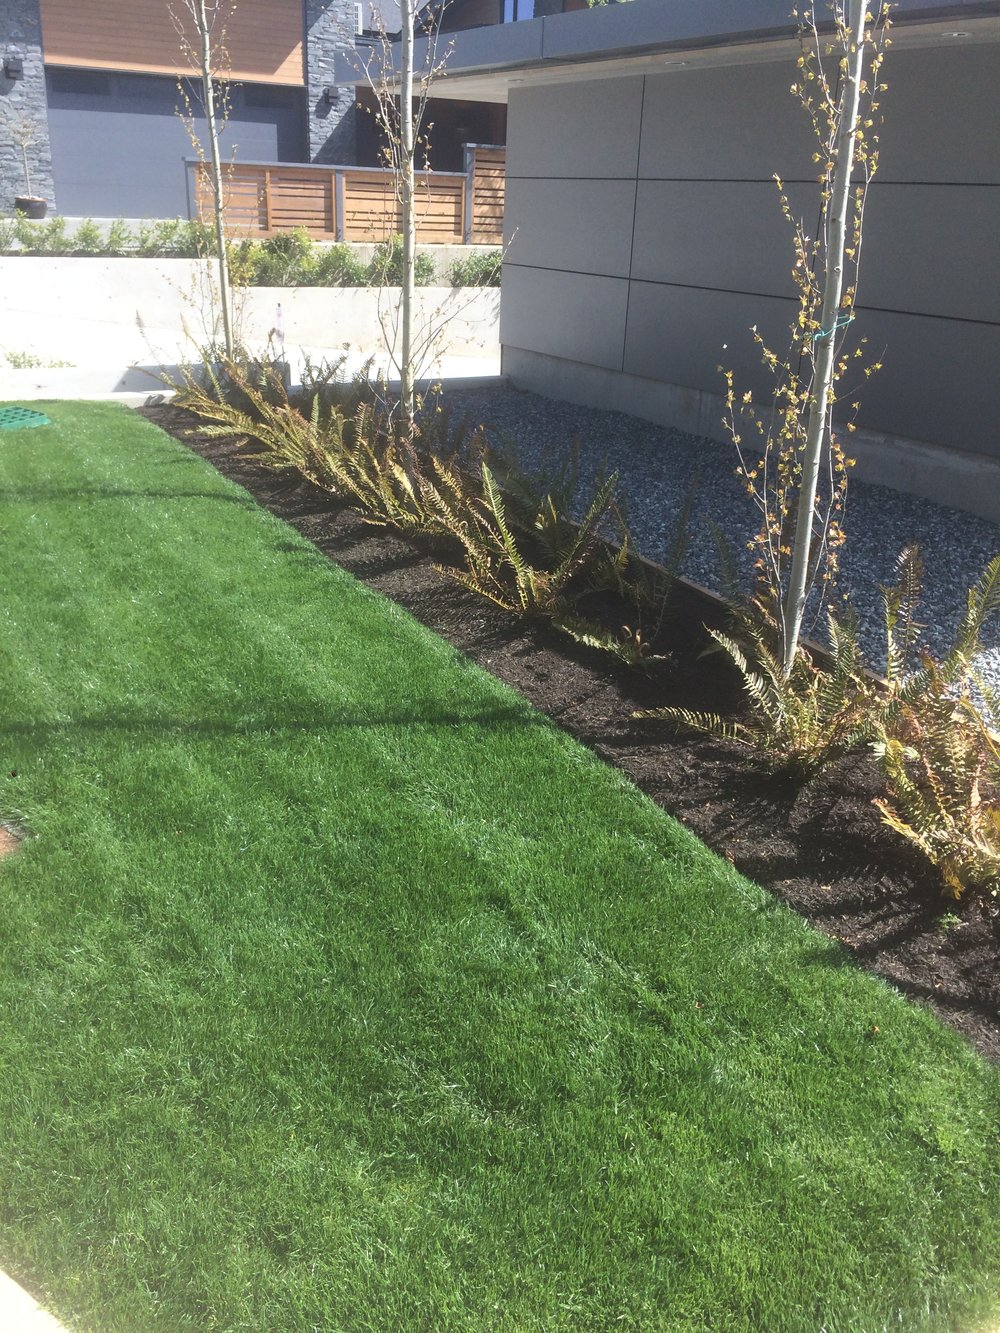 glen oaks spec house - nanaimo landscapers